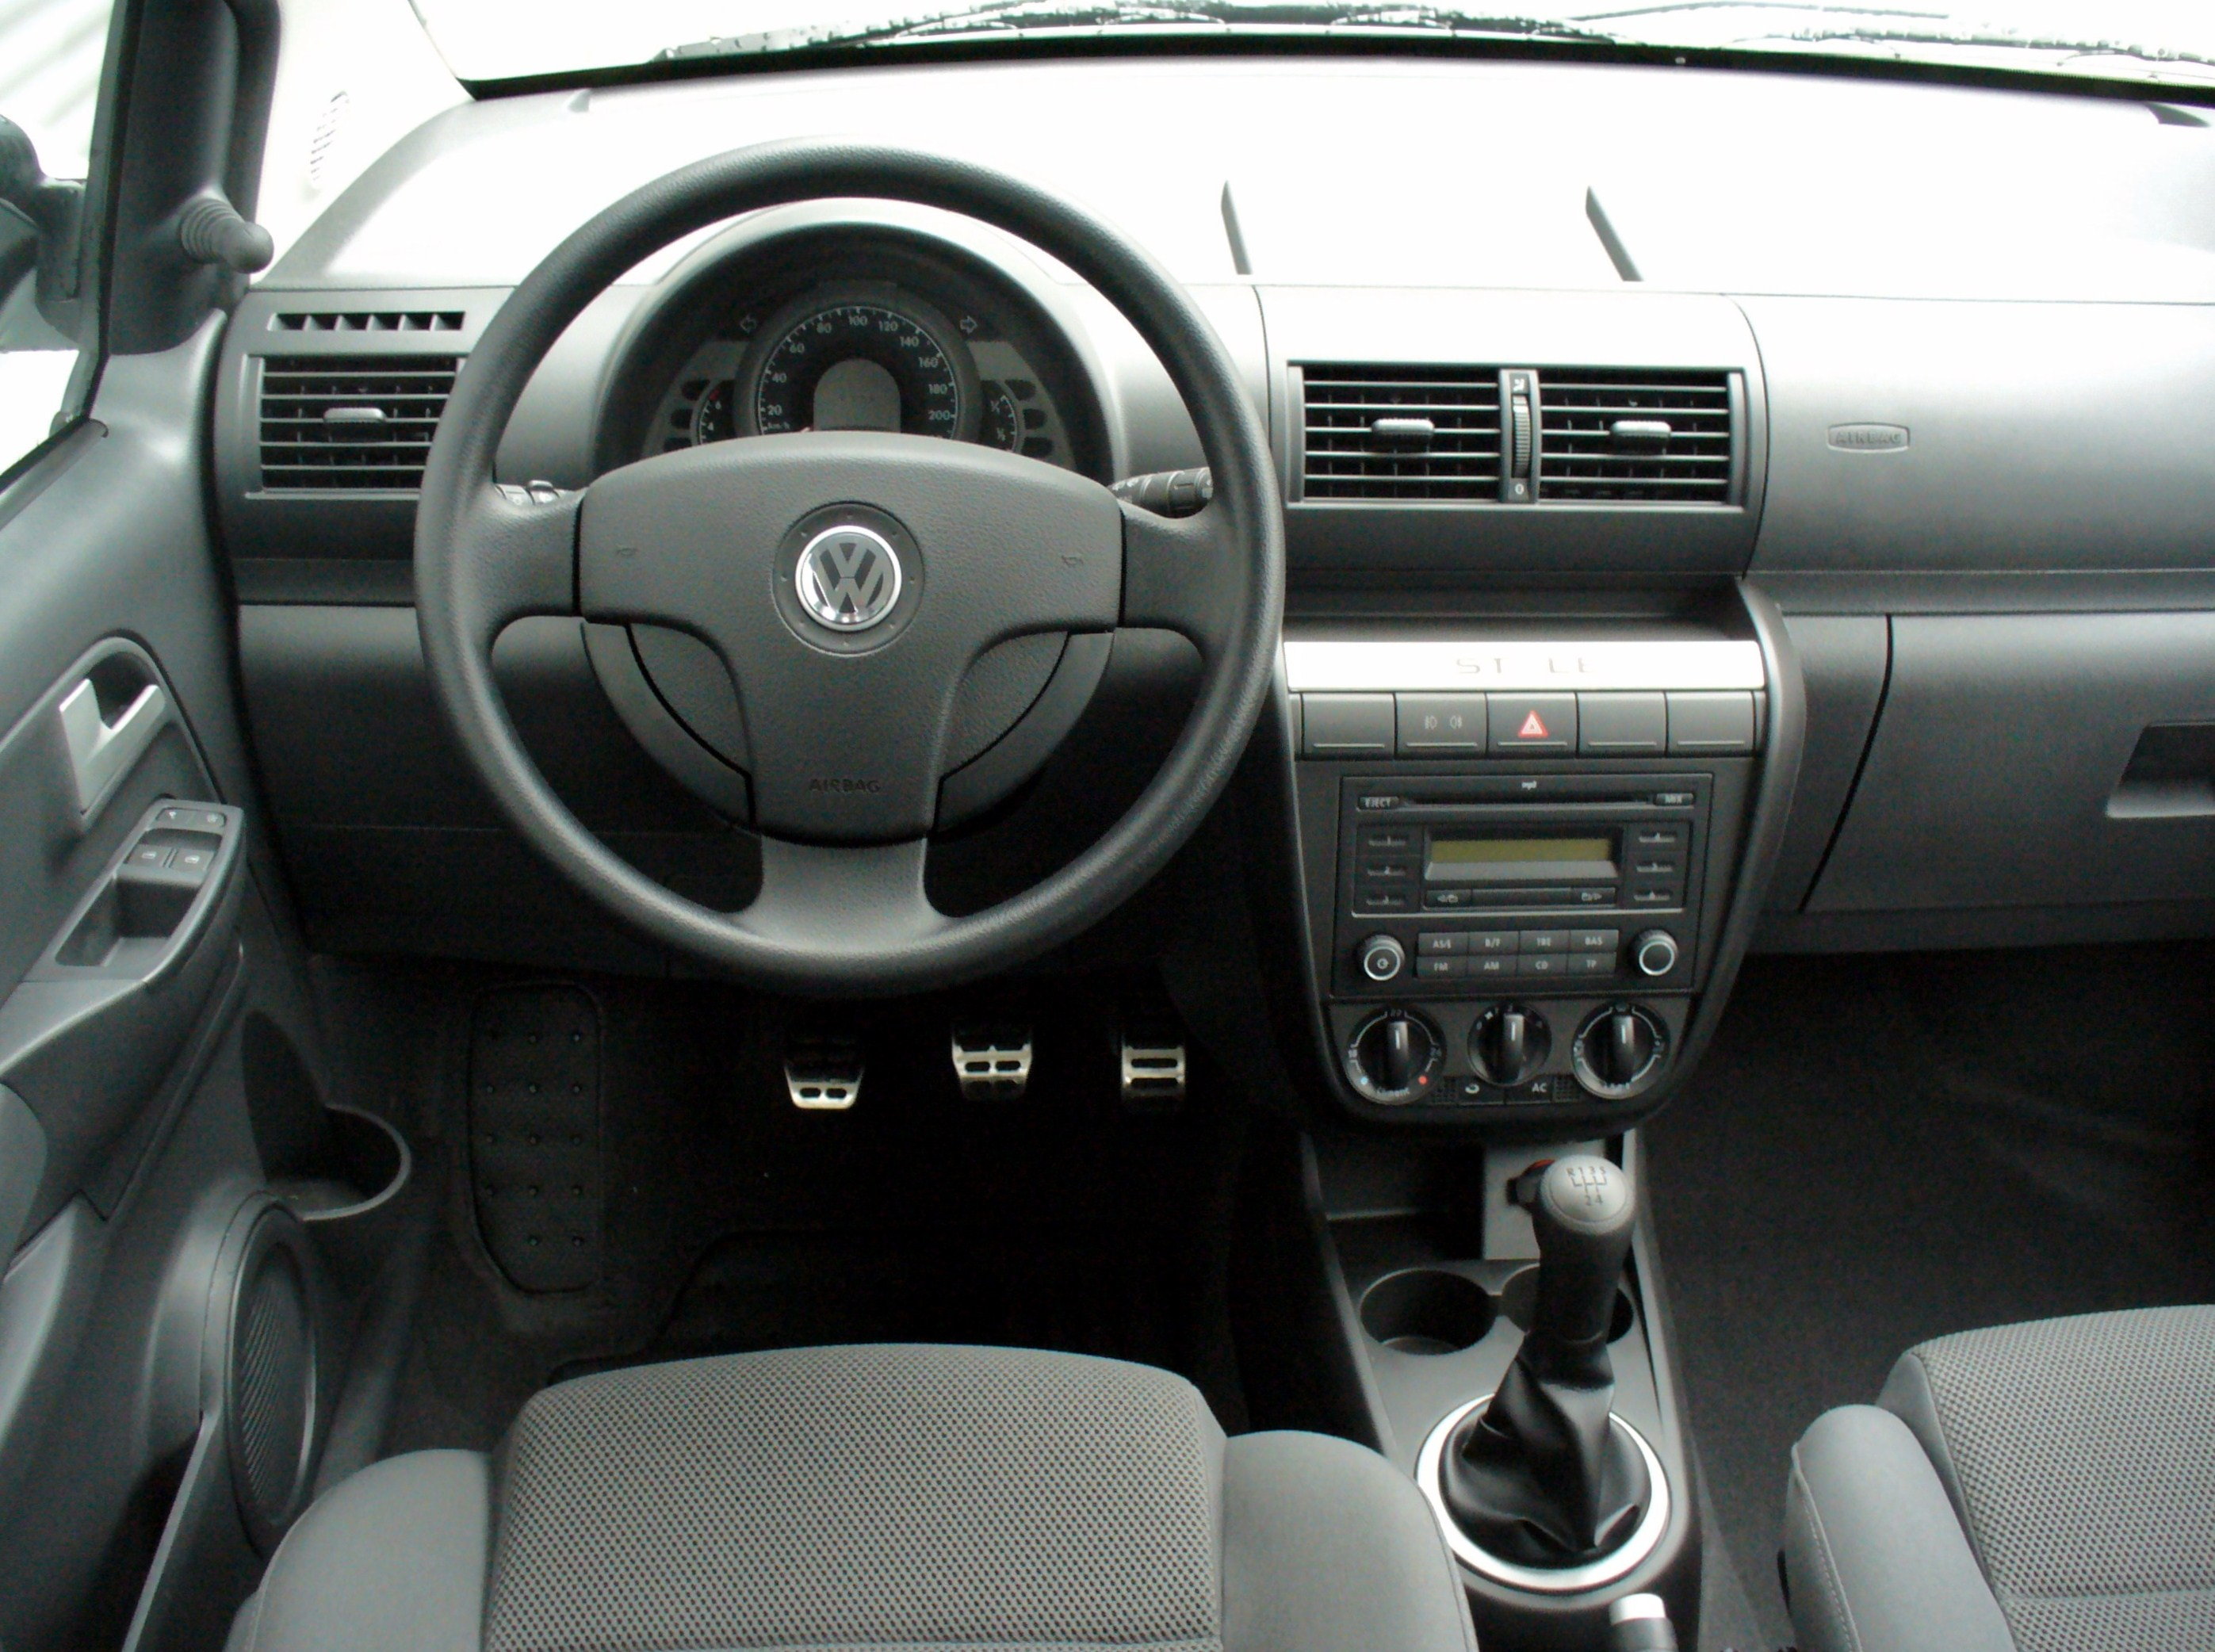 fuse box for vw beetle volkswagen fox     pictures  information and specs auto  volkswagen fox     pictures  information and specs auto